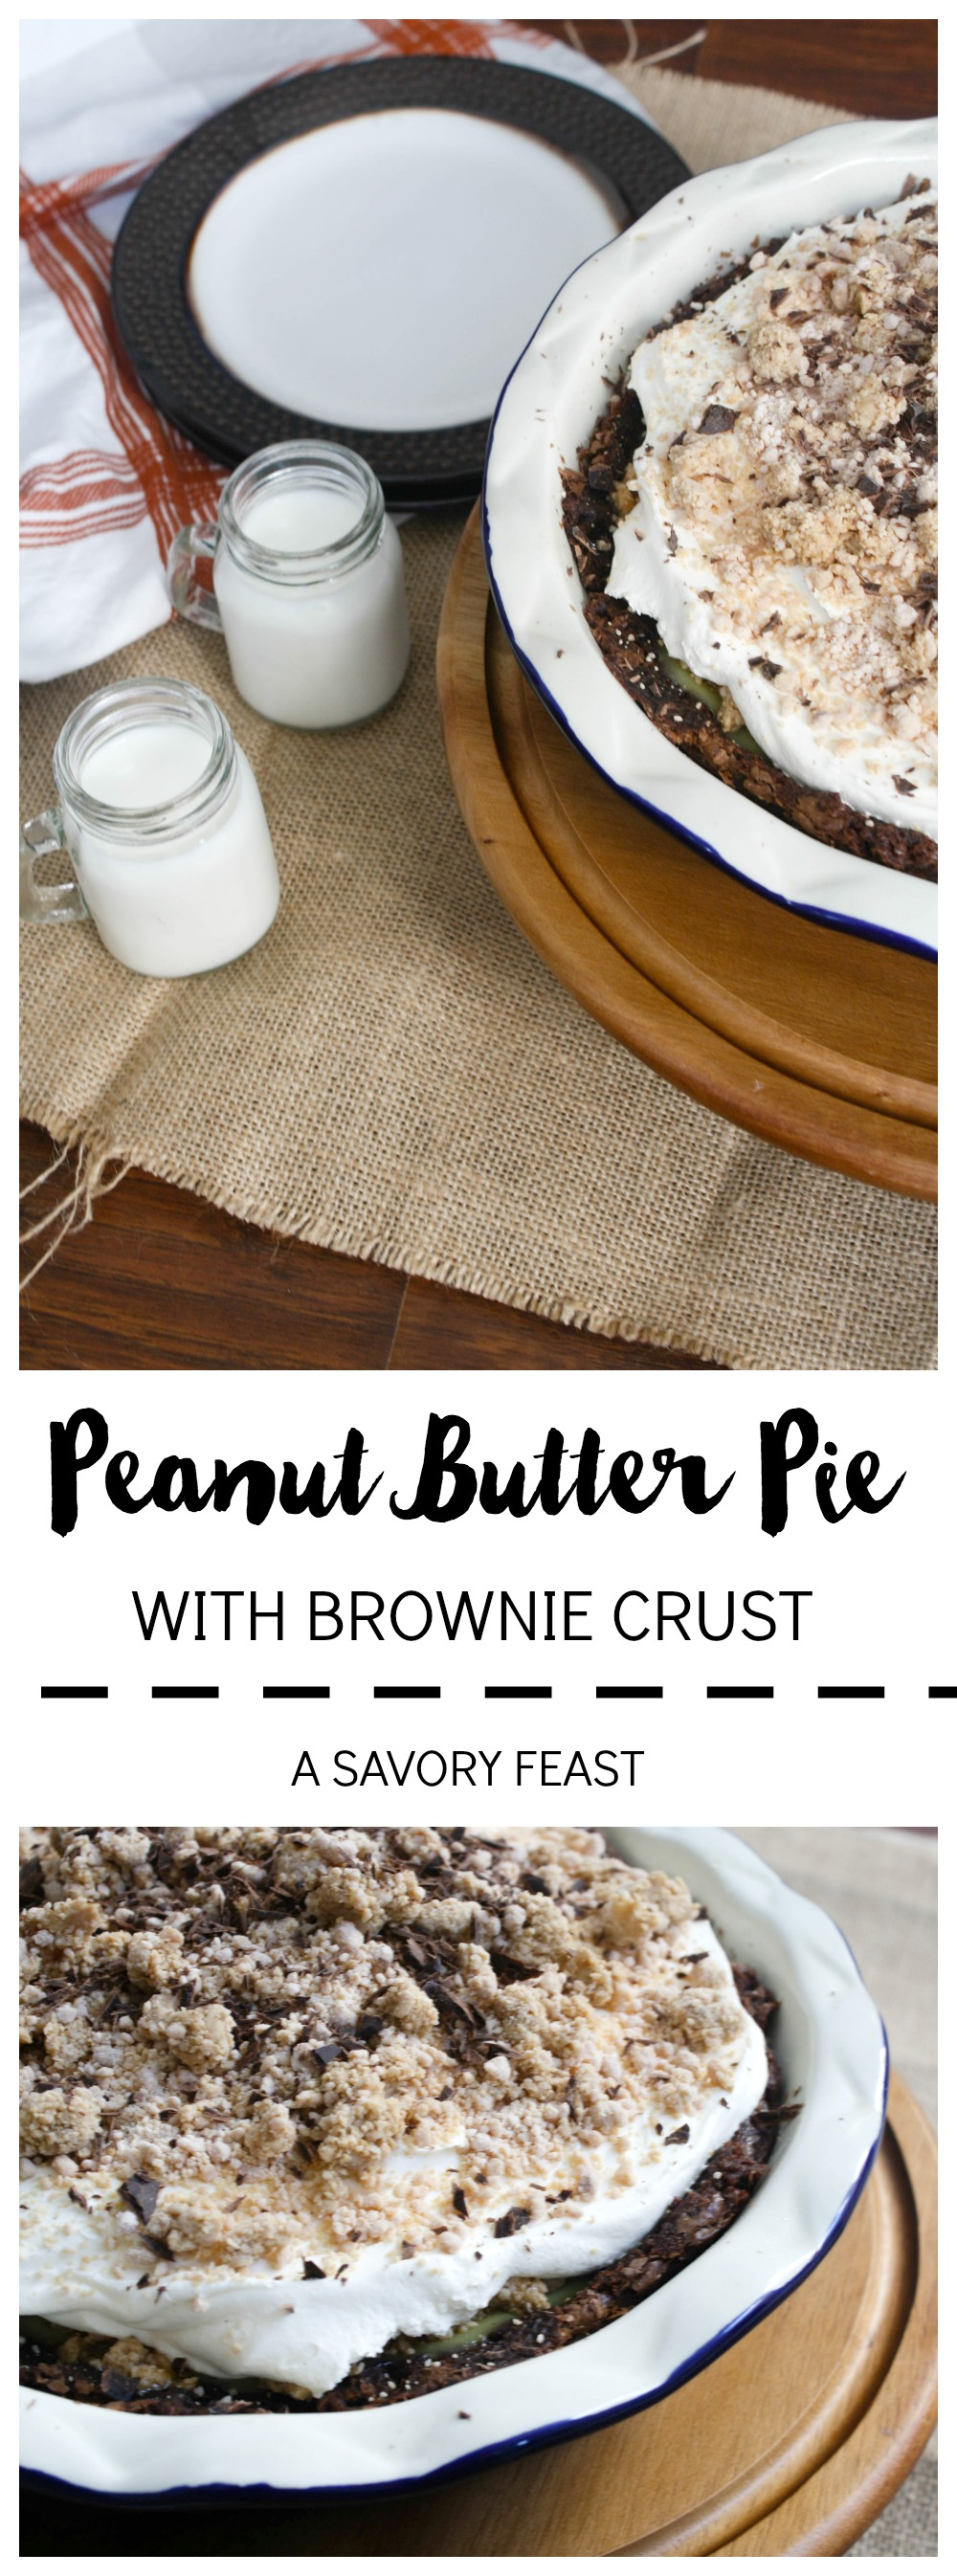 Peanut Butter Pie with Brownie Crust // Get ready for holiday baking with this revamped classic!